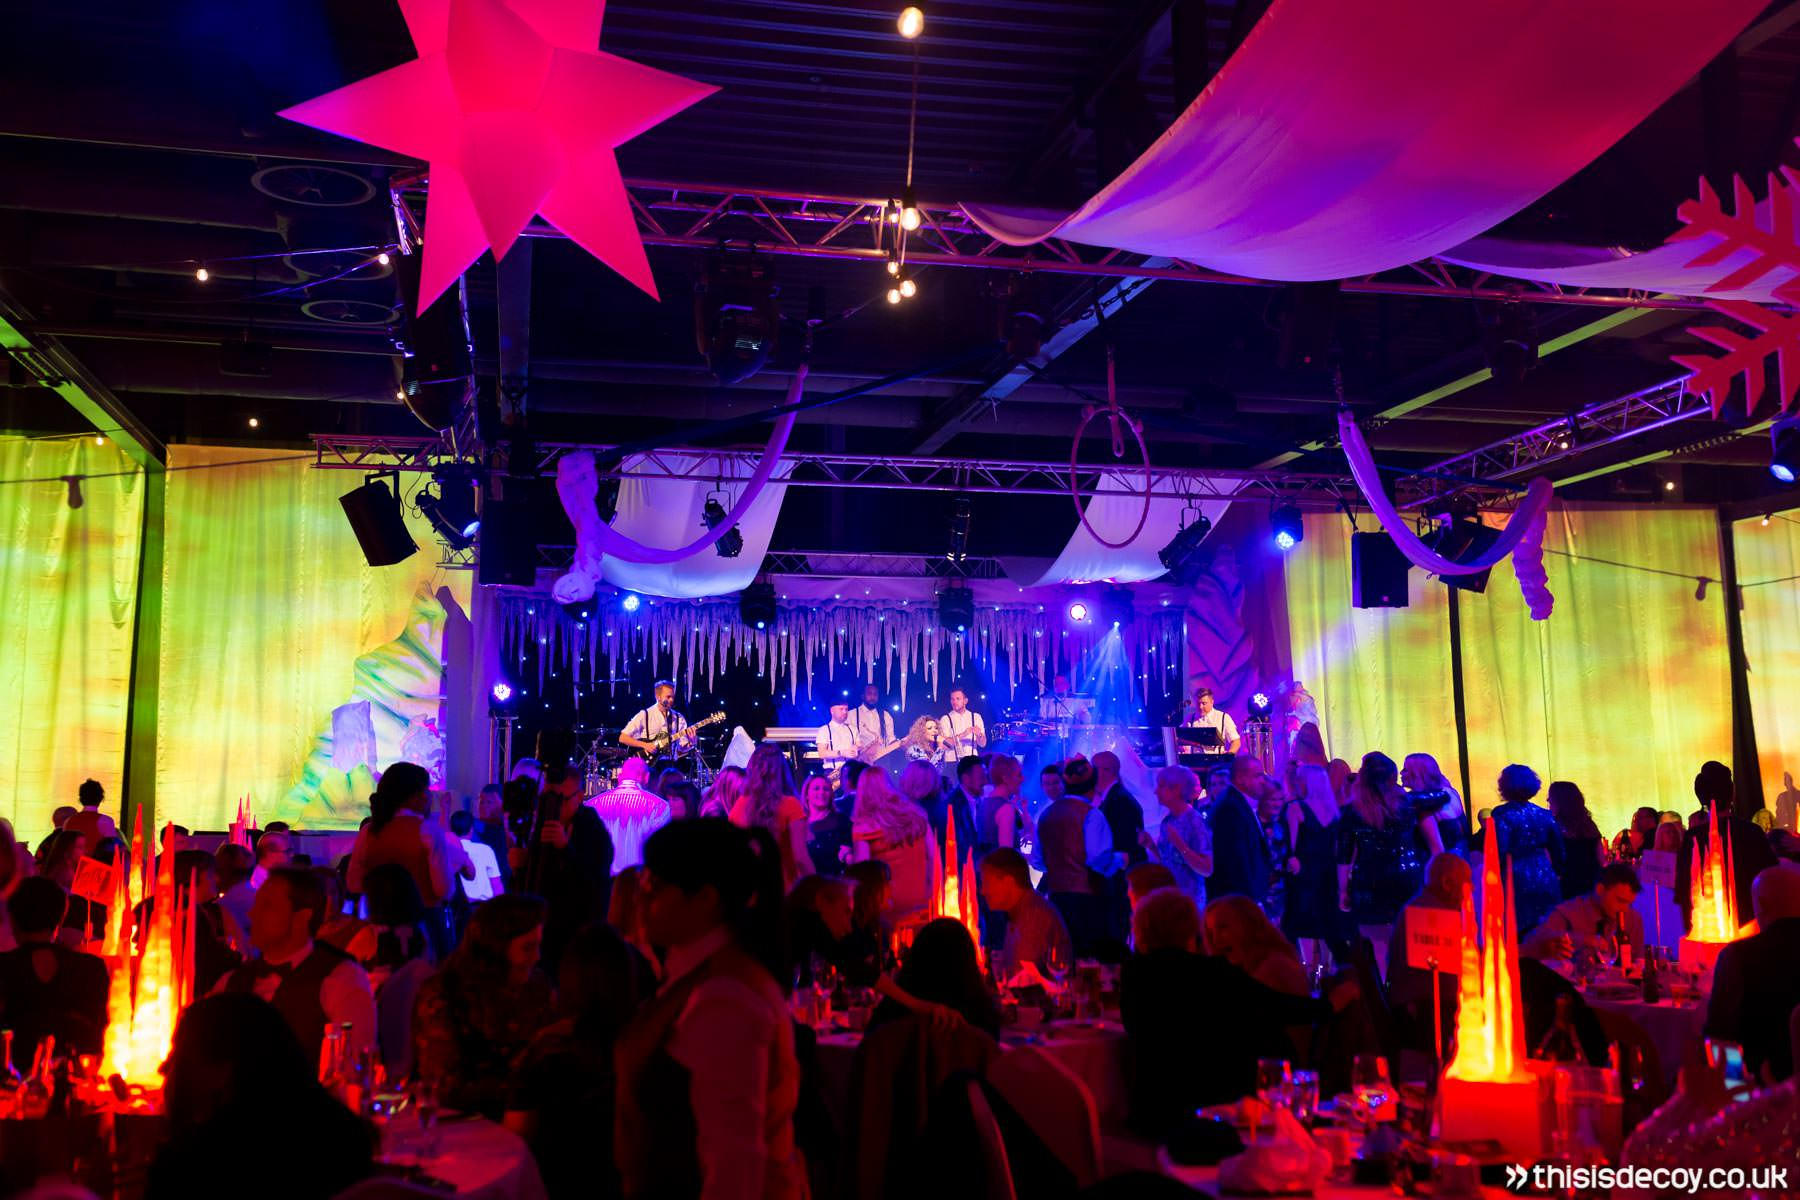 busy room at christmas party event